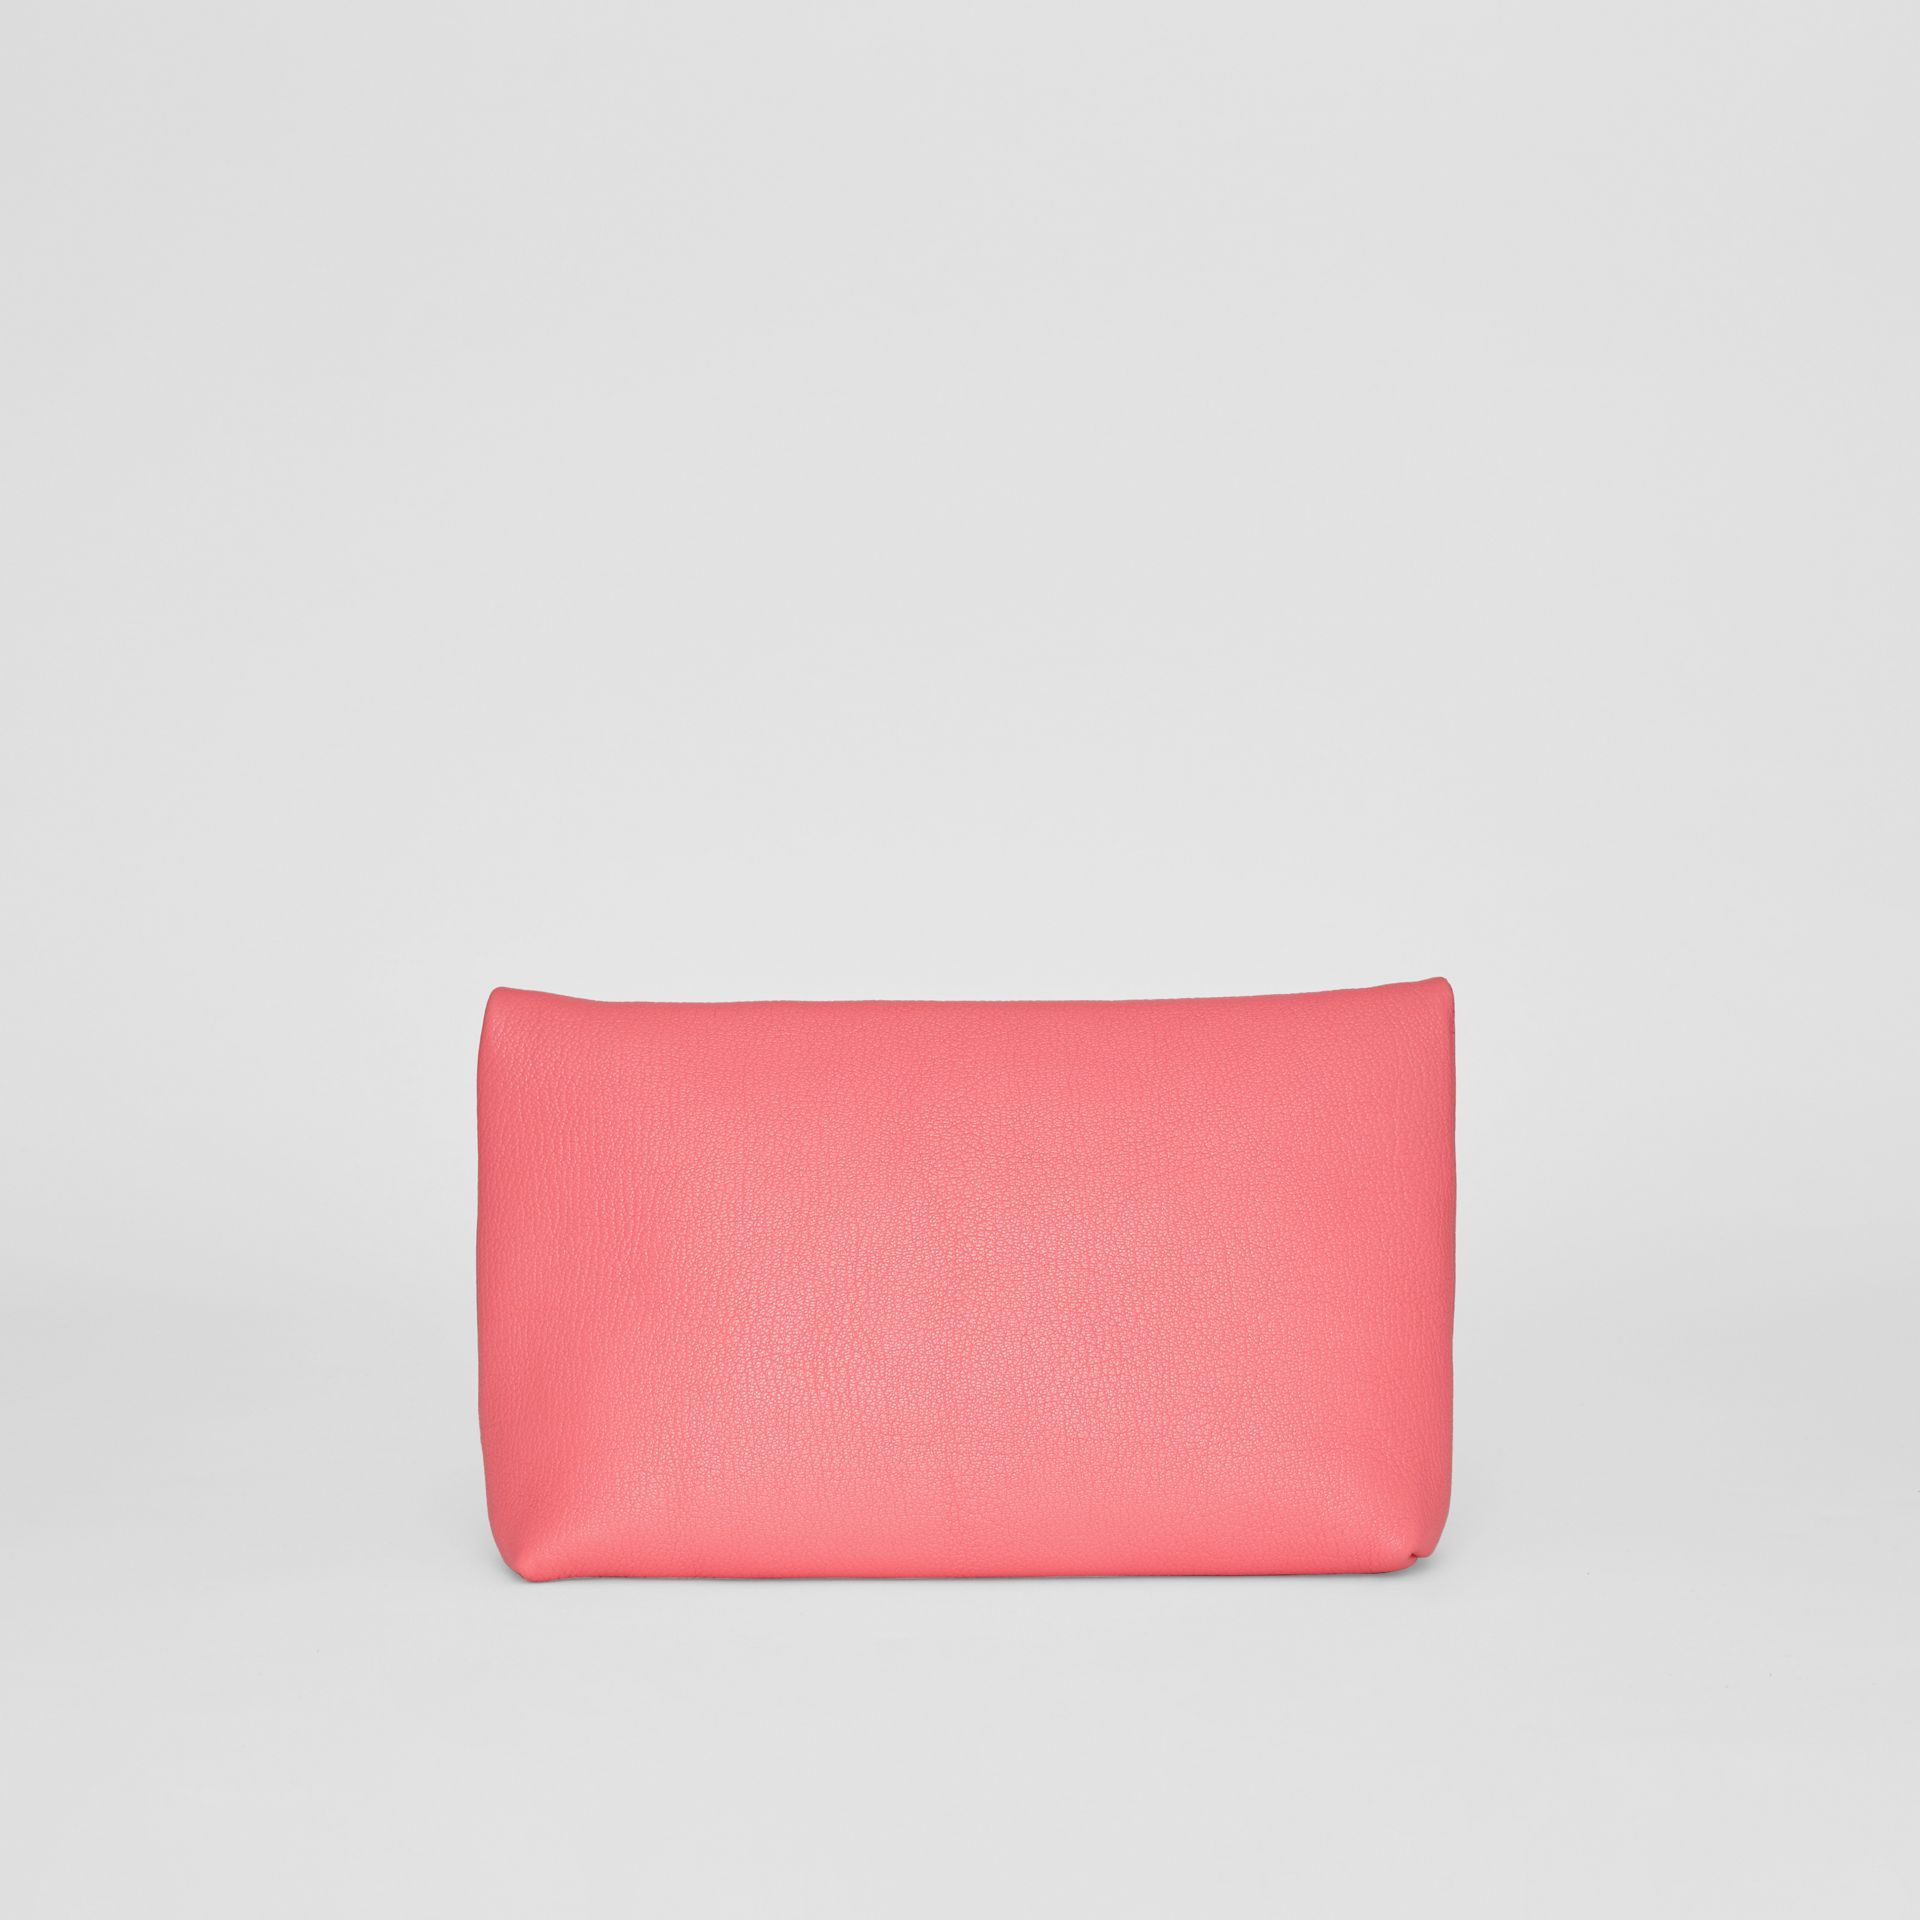 The Medium Pin Clutch in Leather in Bright Coral Pink - Women | Burberry - gallery image 7